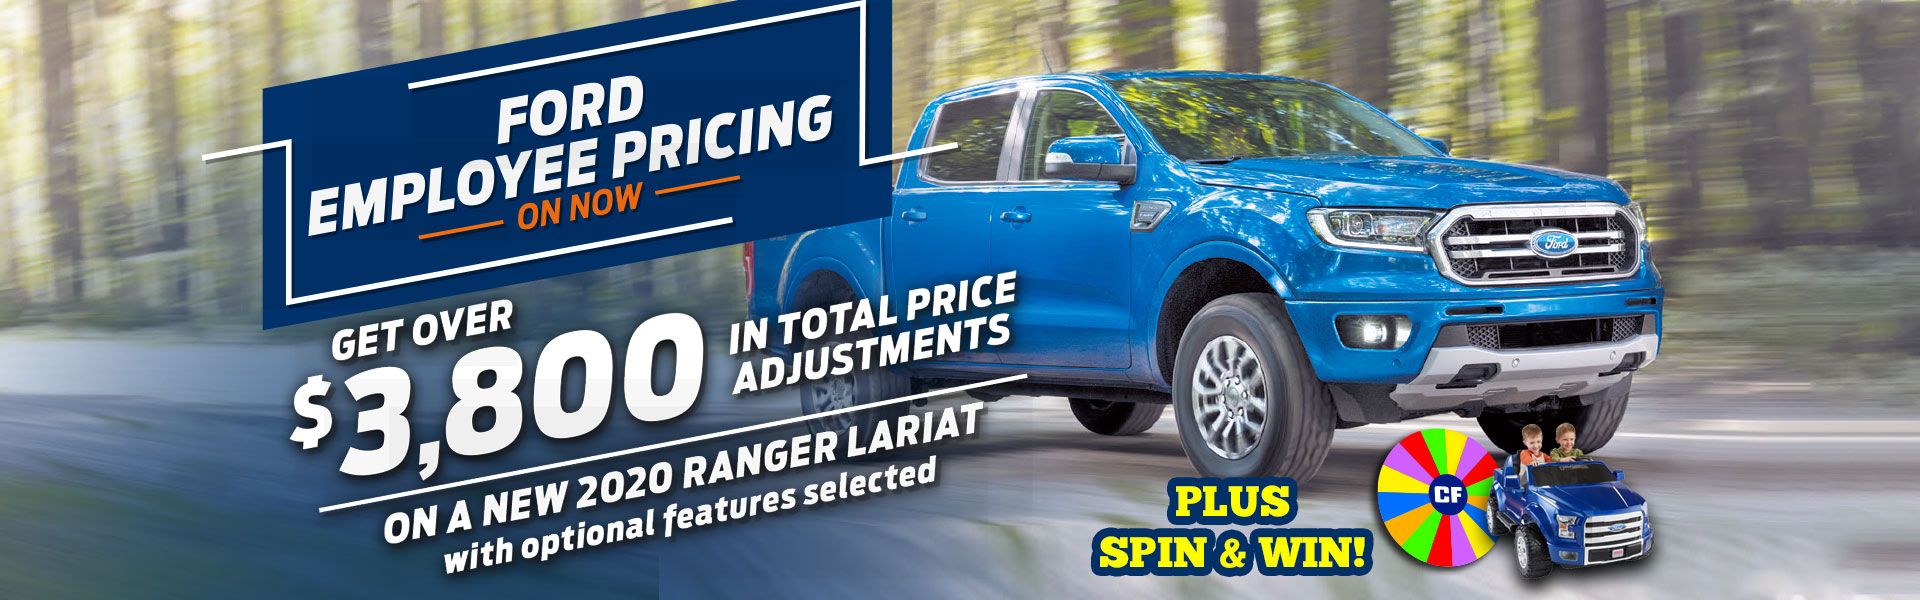 Ford Employee Pricing Ranger Sale